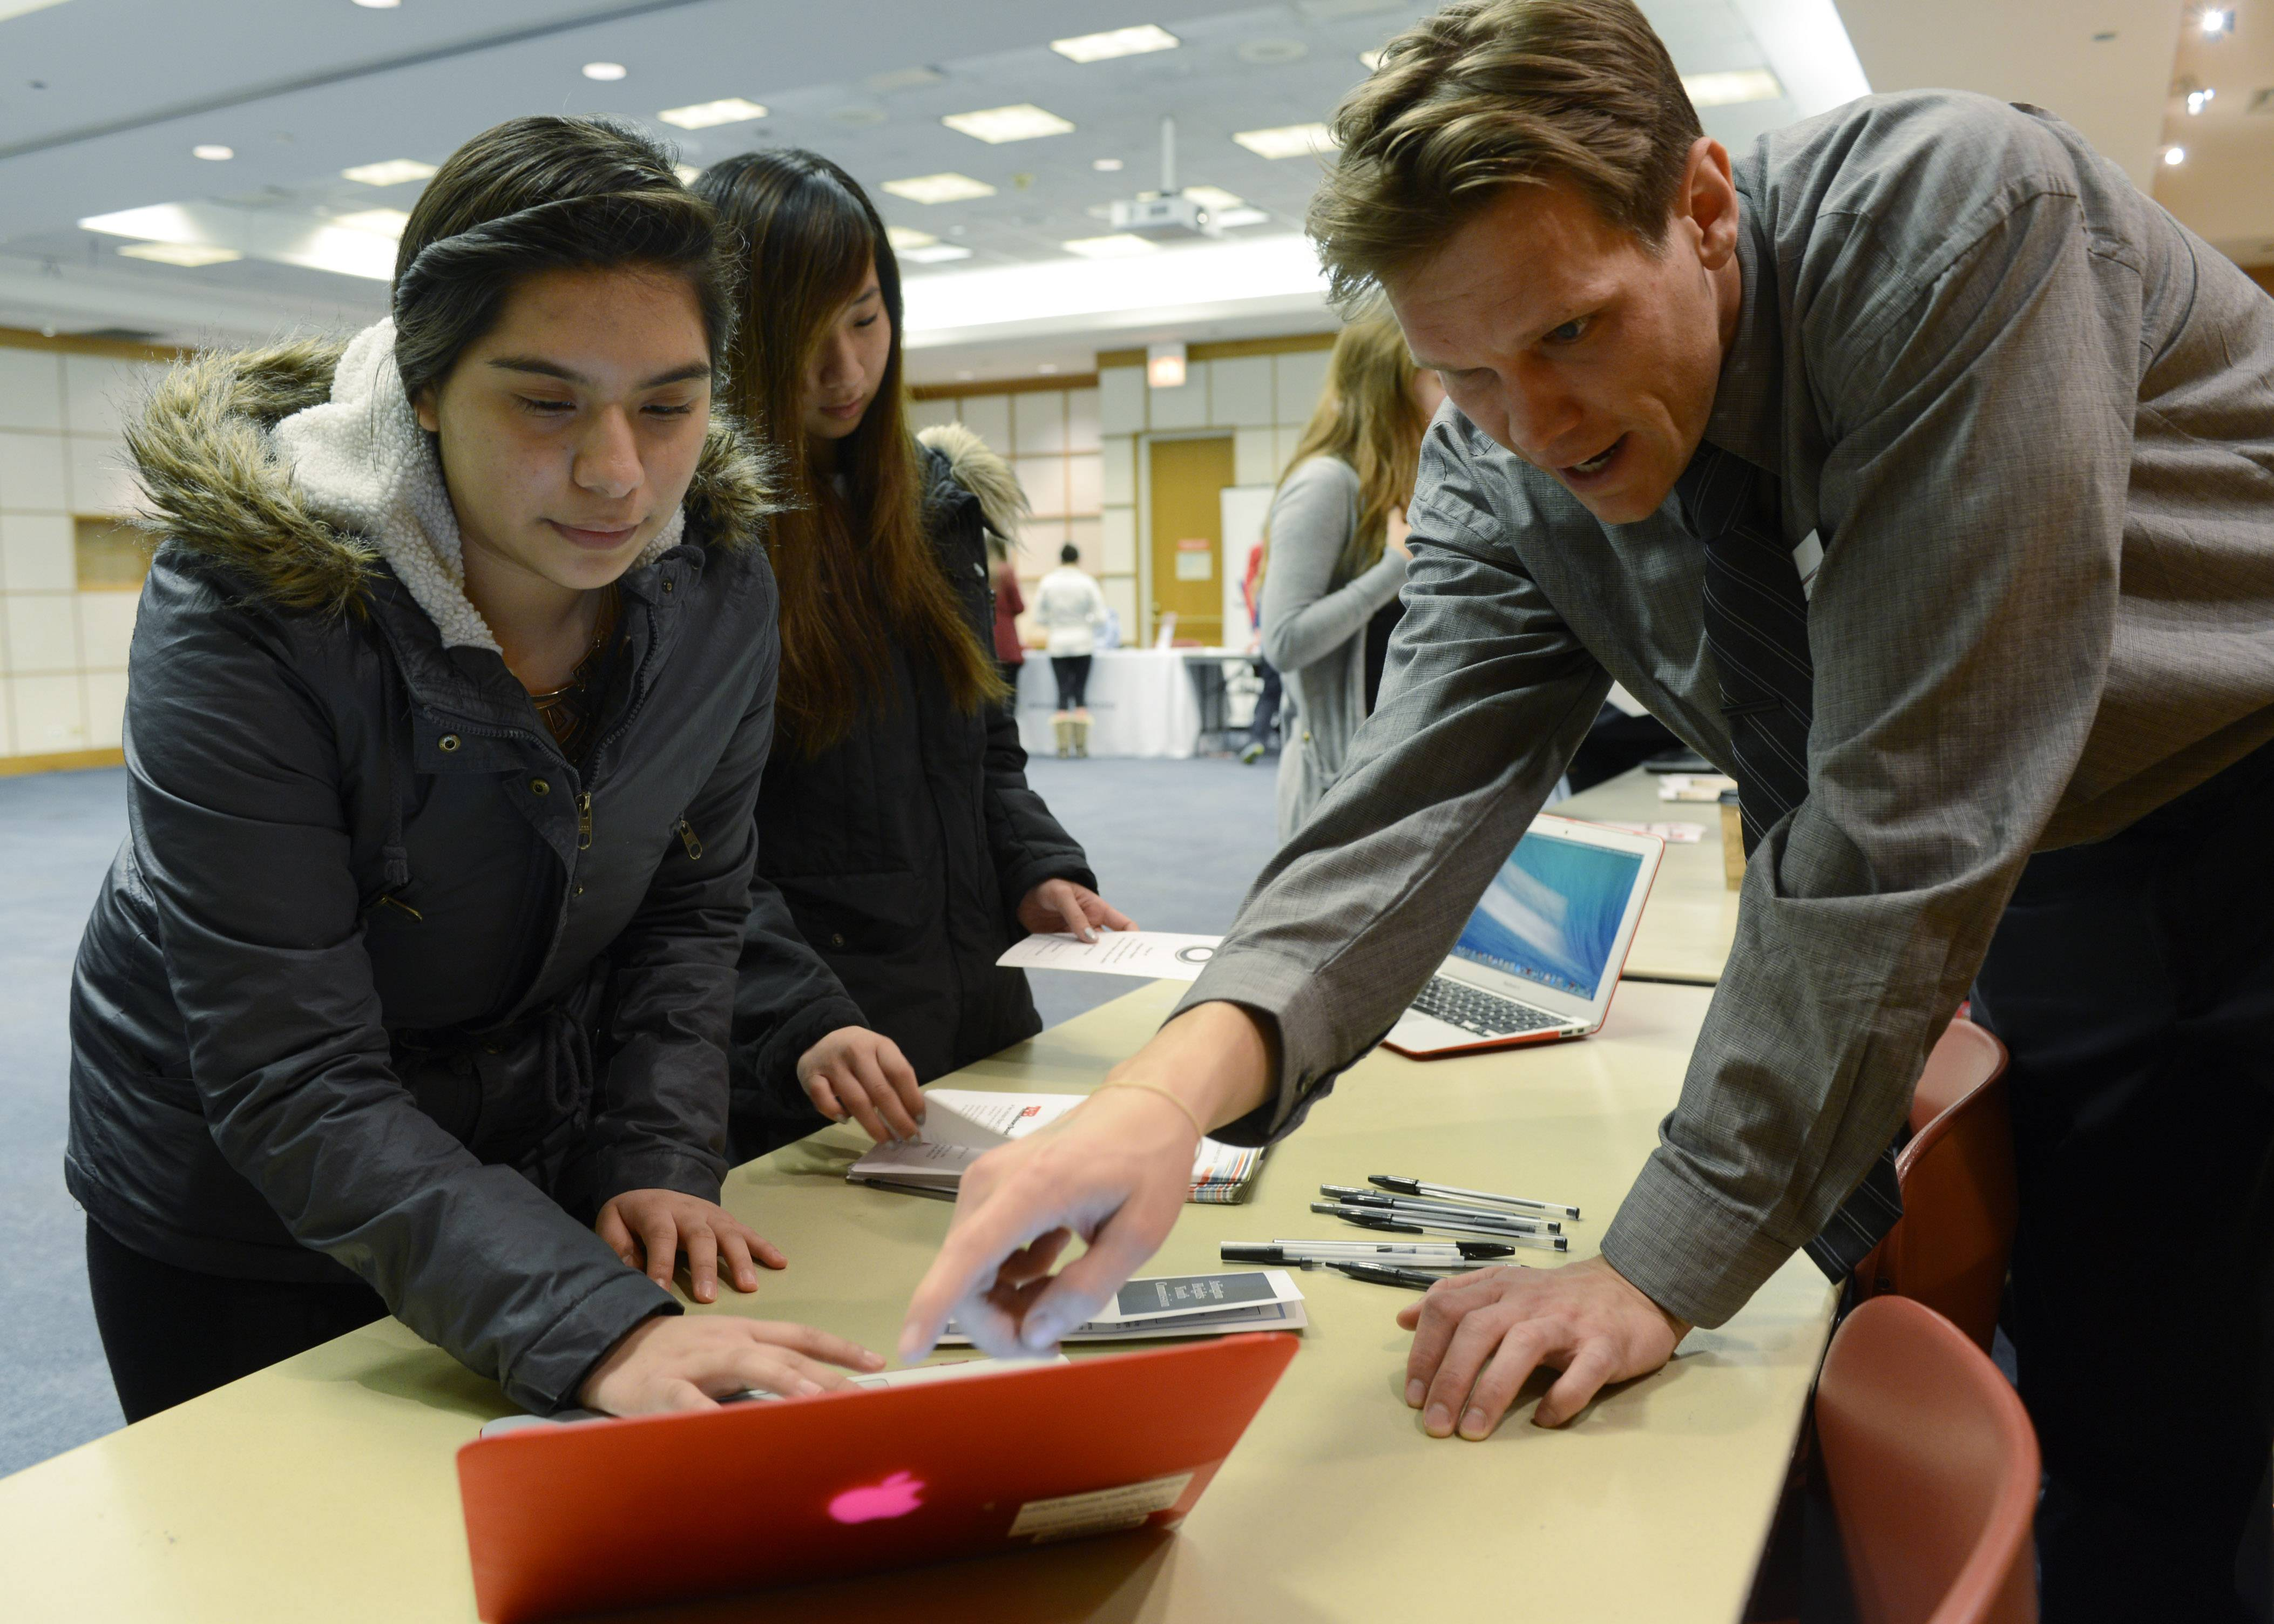 Lizbeth Melgoza, 15, left, and Vivian Tran, 16, both Hersey High School students from Mount Prospect, visit with Tom Spicer, teen services supervisor for the Arlington Heights Memorial Library, during the Teen Job Fair on Saturday at the library.